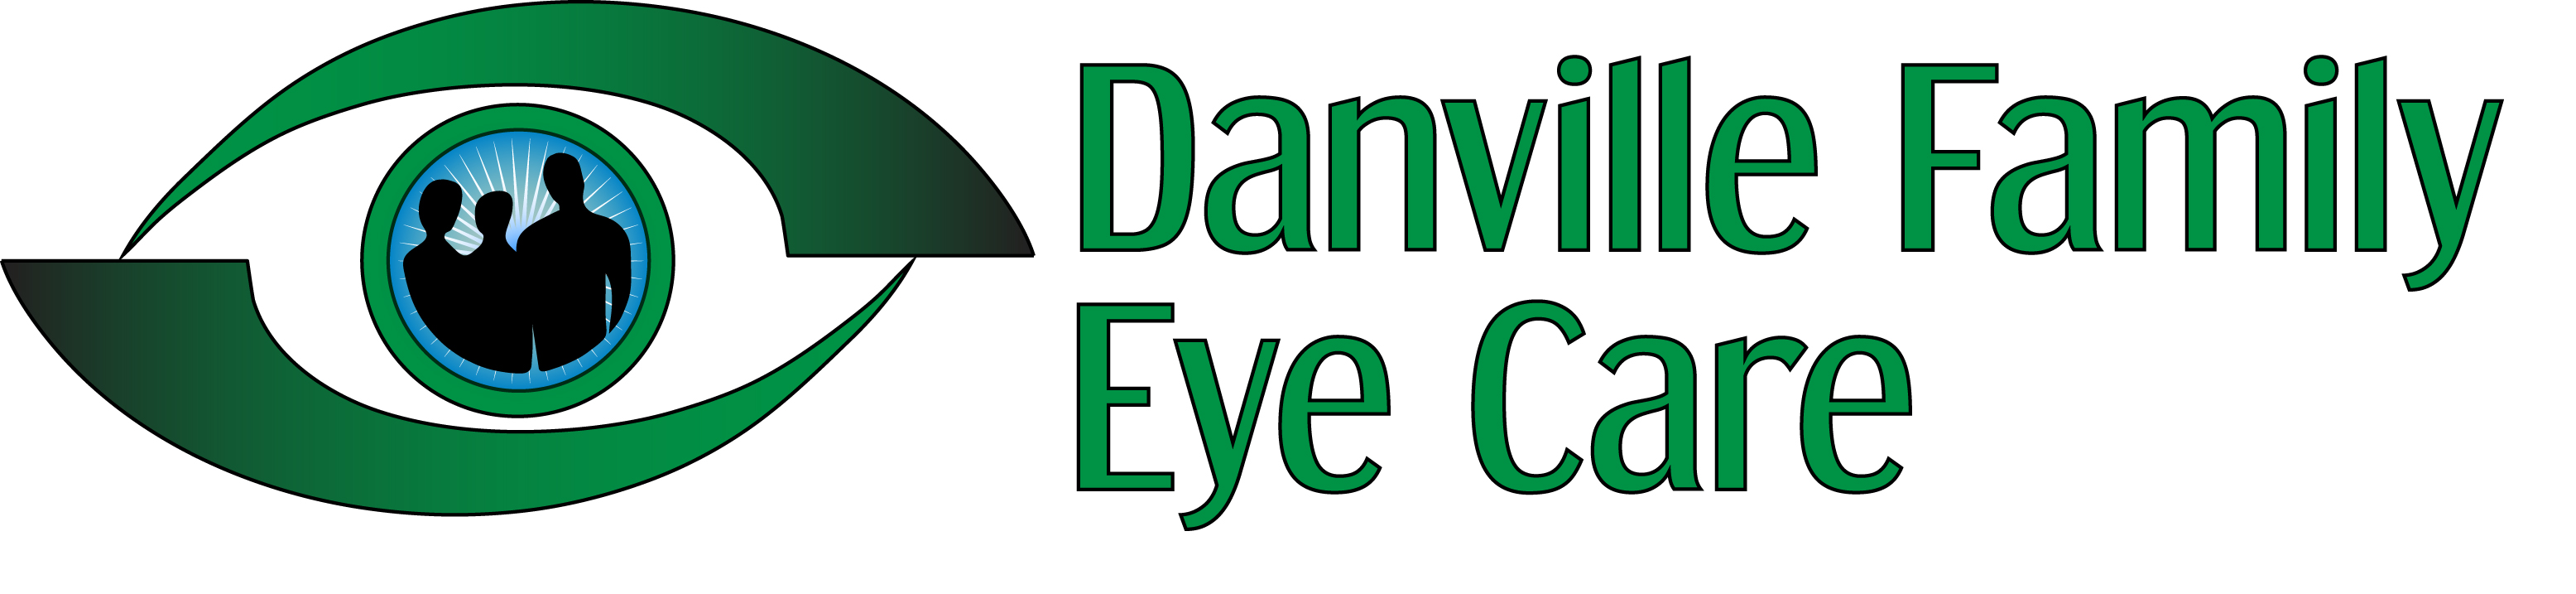 Danville Family Eye Care